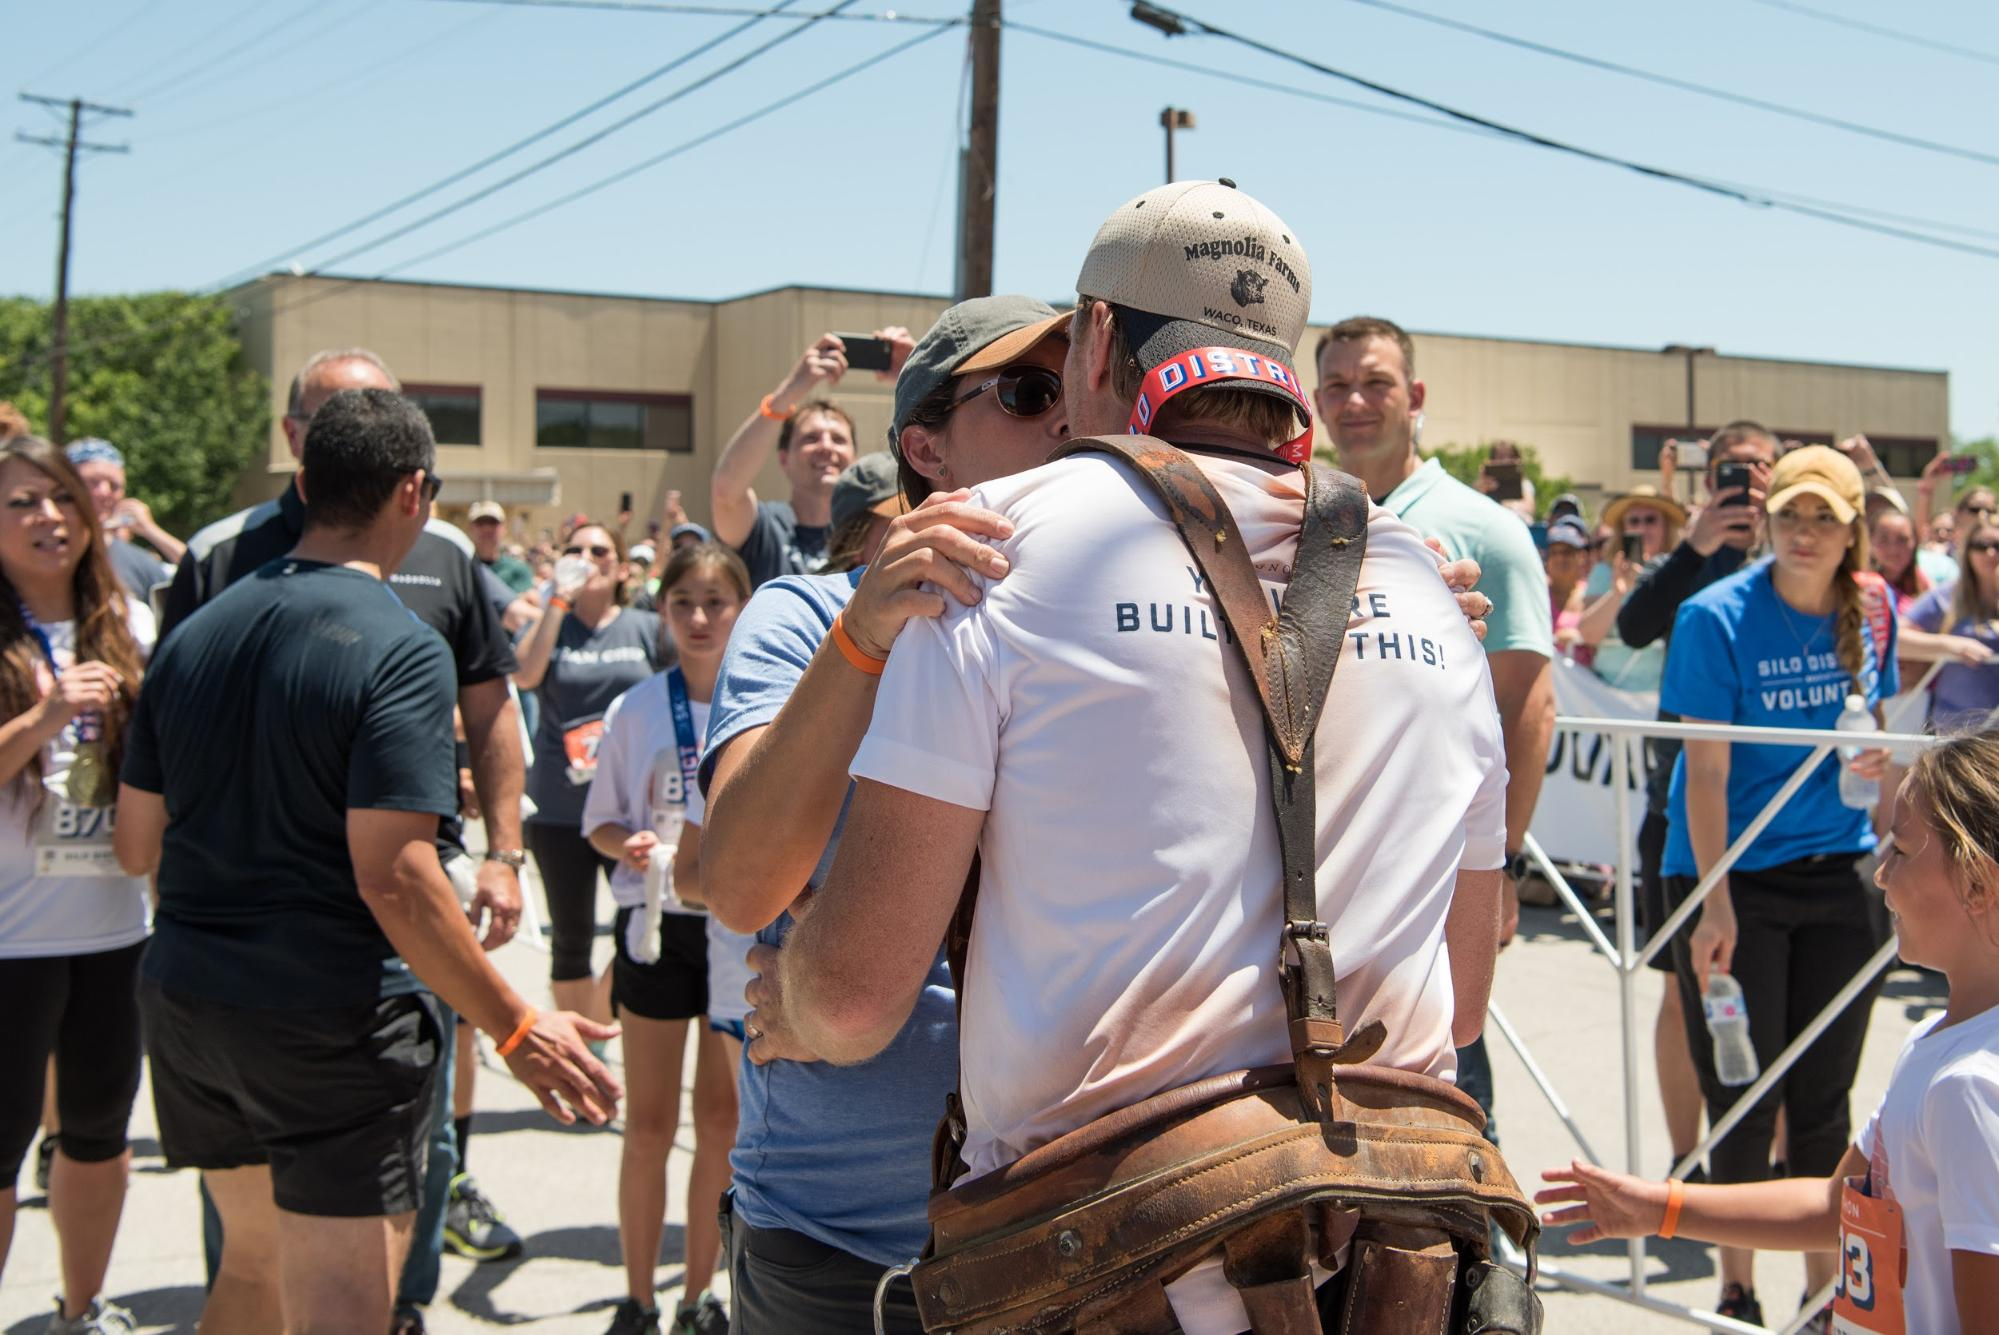 Chip Gaines Reveals the Incredible Reason He Wore His Toolbelt While Running His Marathon silo-district-marathon-chip-gaines-joanna-gaines-running-finish-line-brave-like-gabe-toolbelt-waco